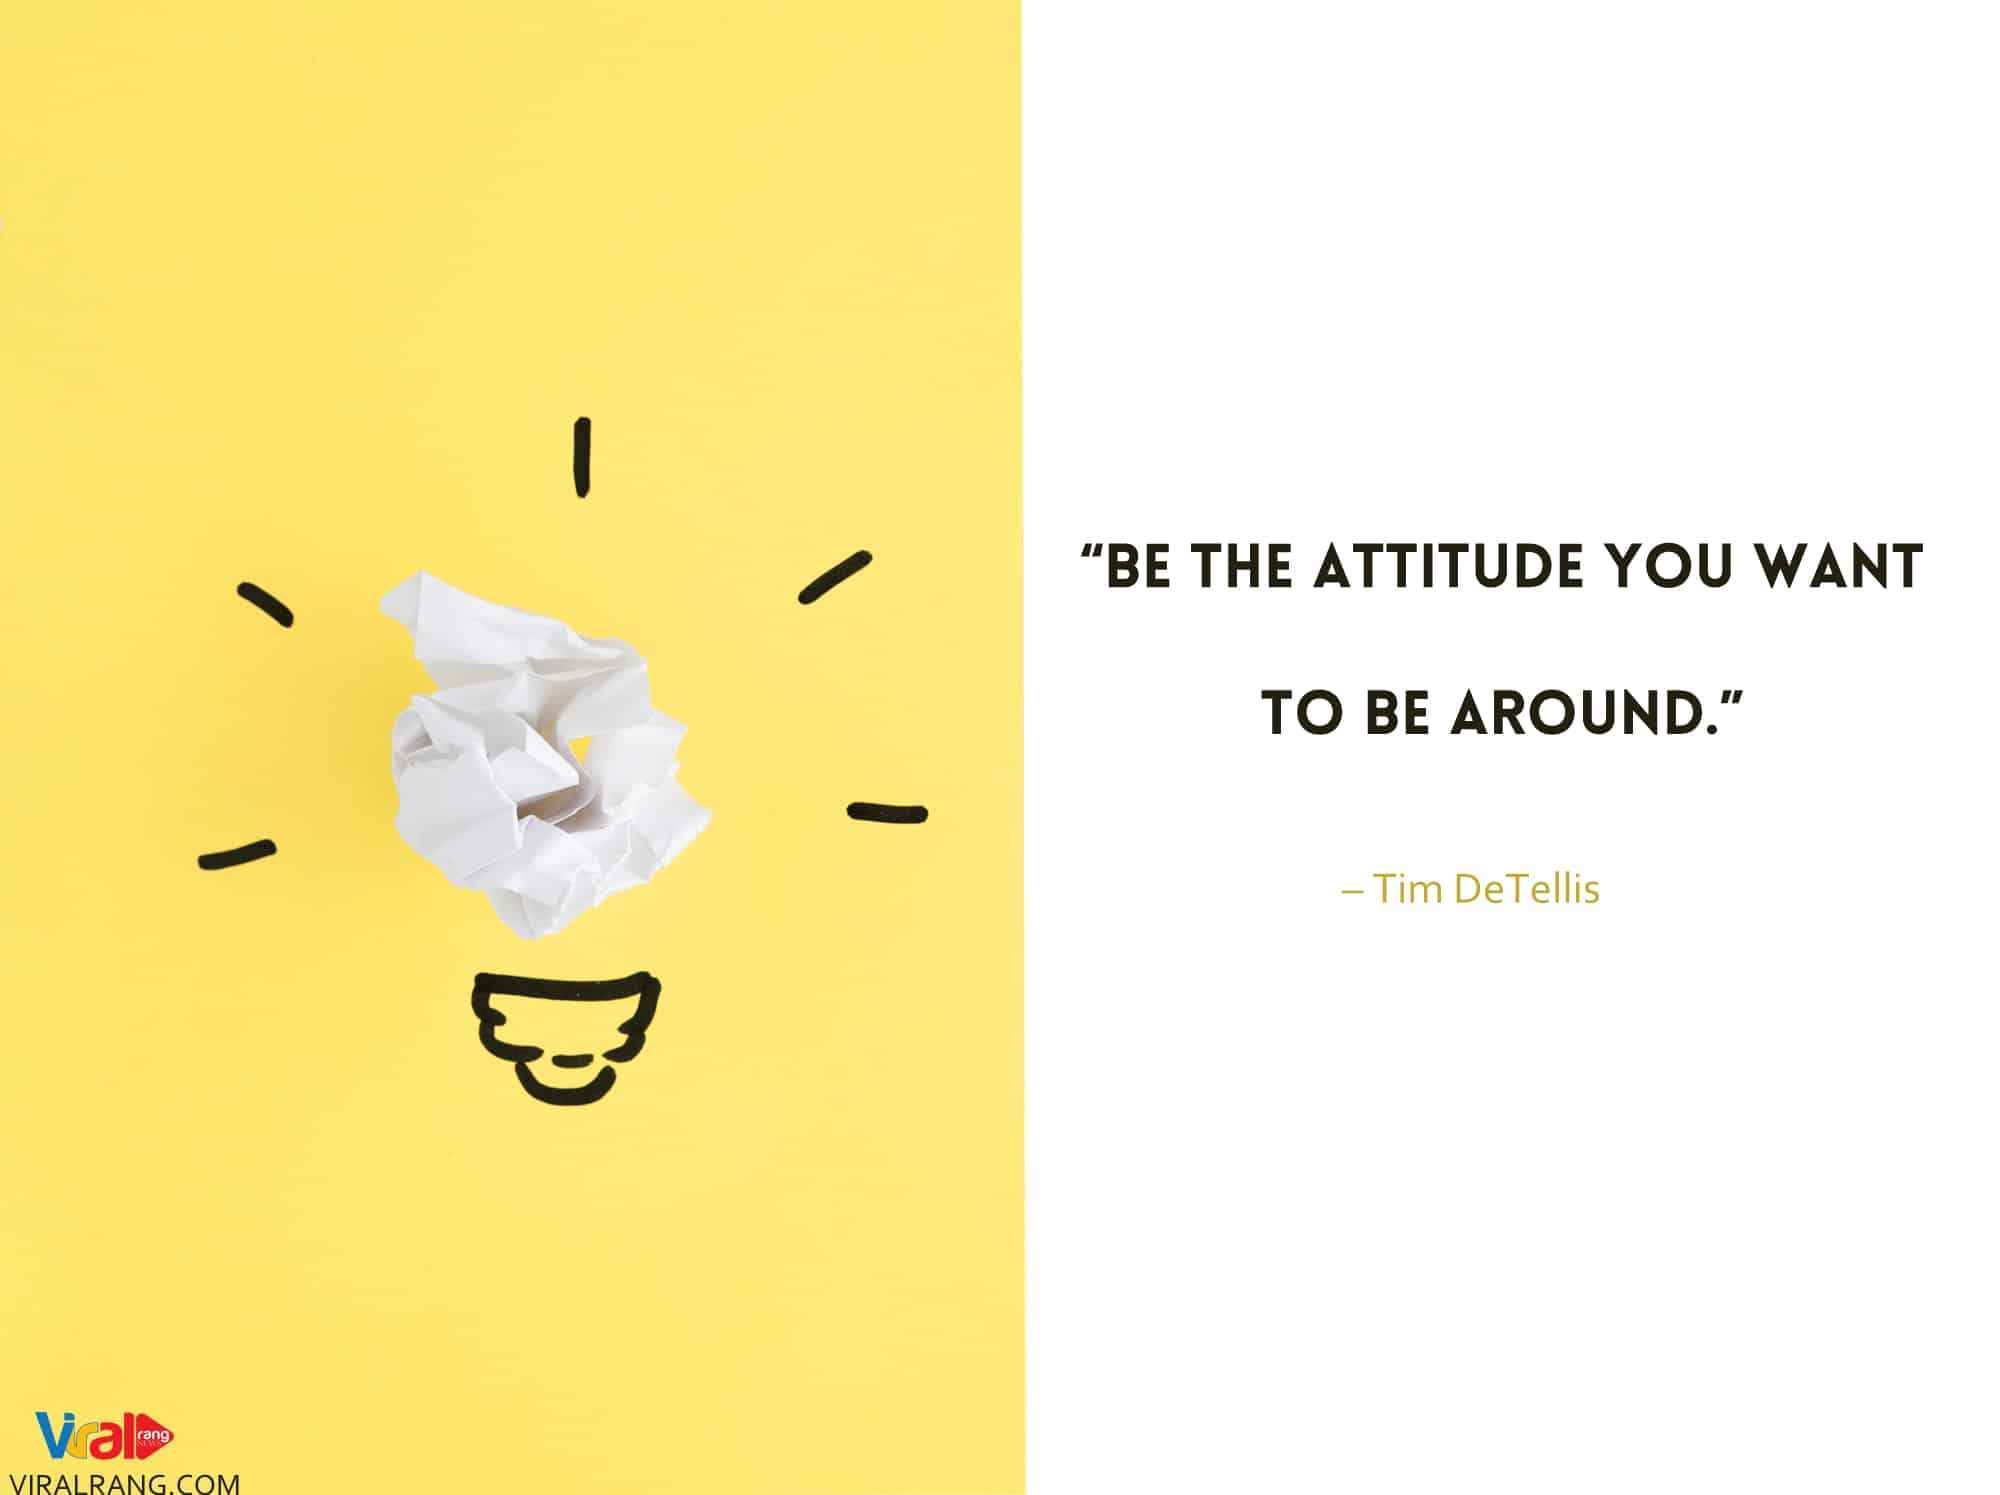 Be the attitude you want